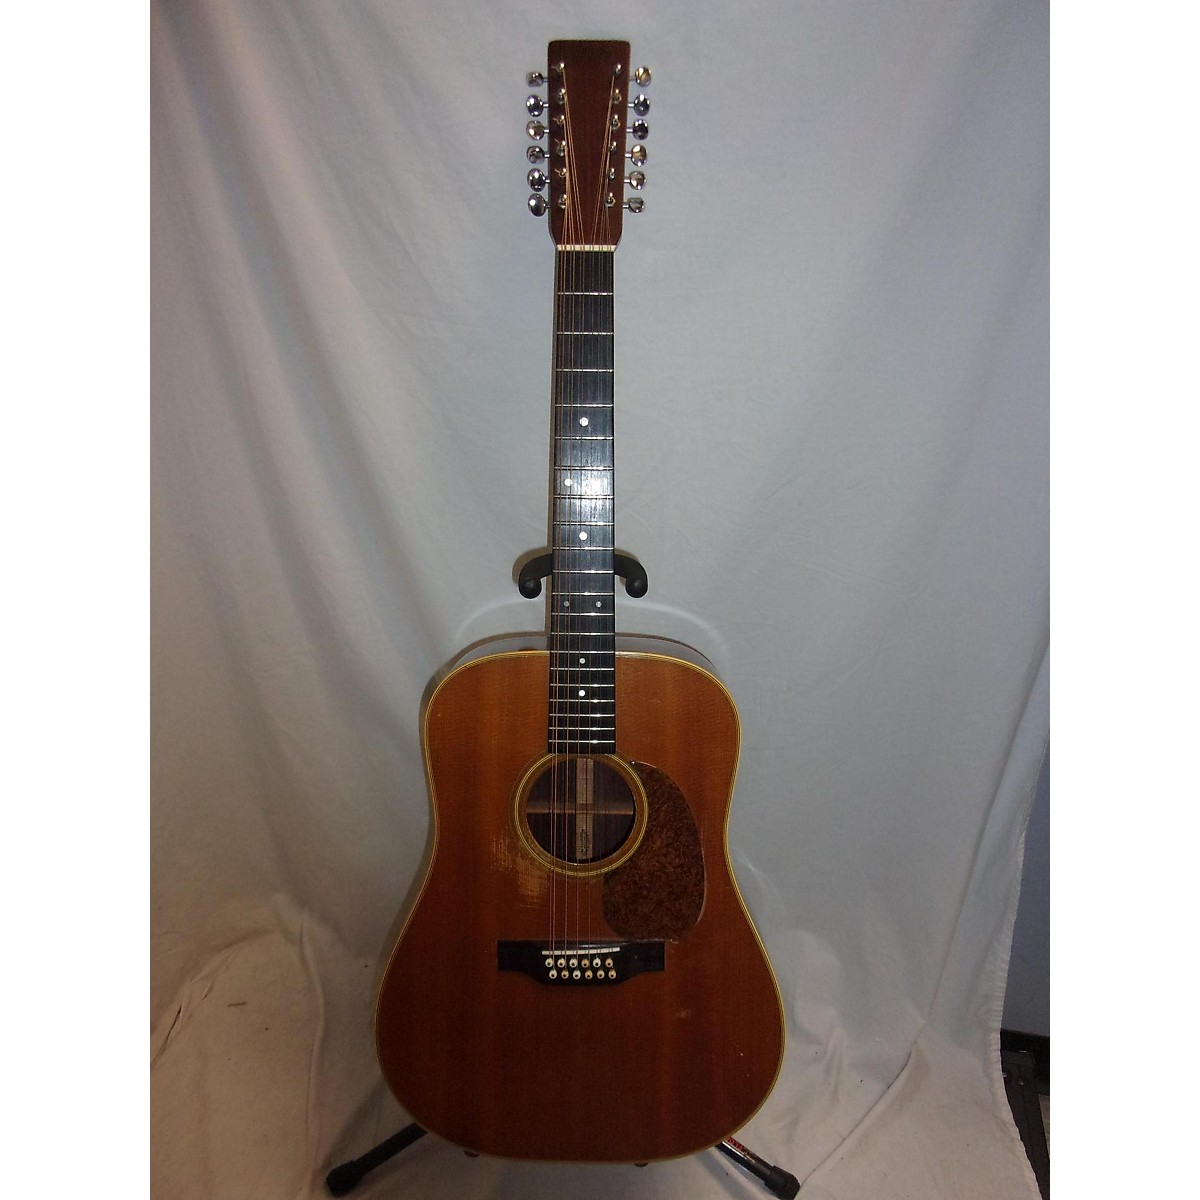 Martin 1971 D12-28 12 String Acoustic Guitar